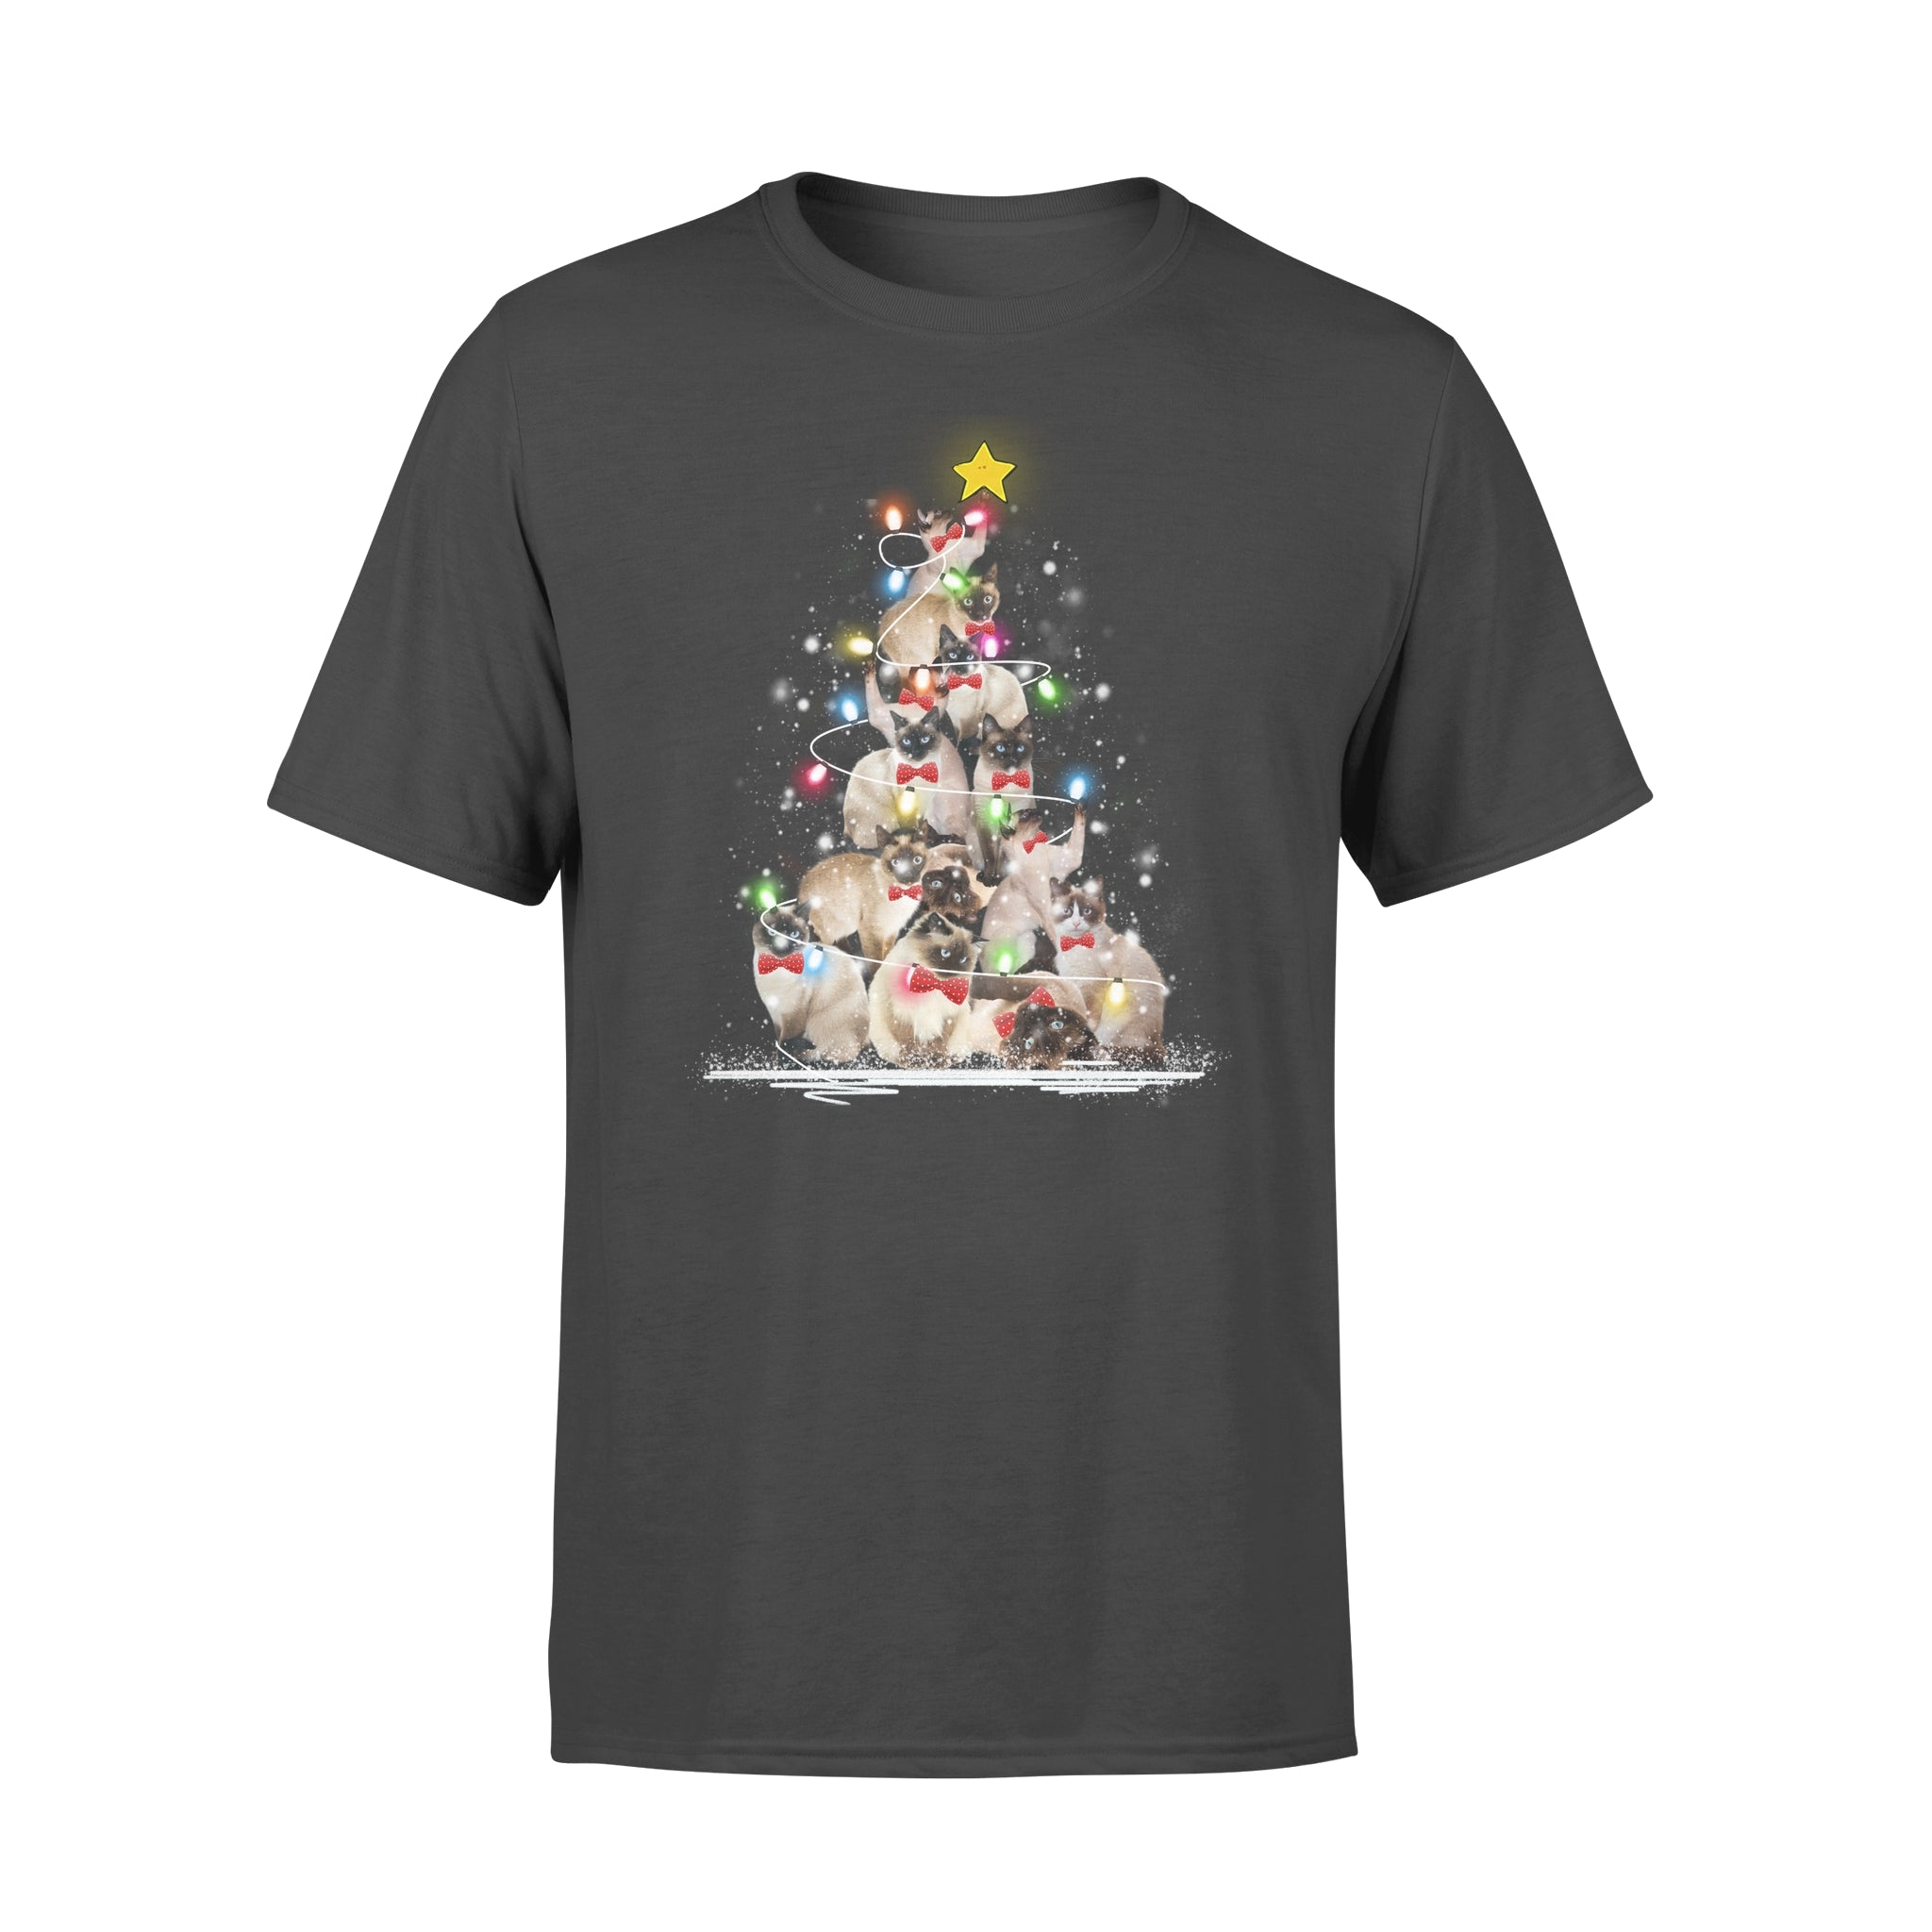 Besteever Cute Siamese Cats Tree Xmas Shirt Gift For Cat Lover Couple Friend Family Christmas TL379 – Standard T-shirt